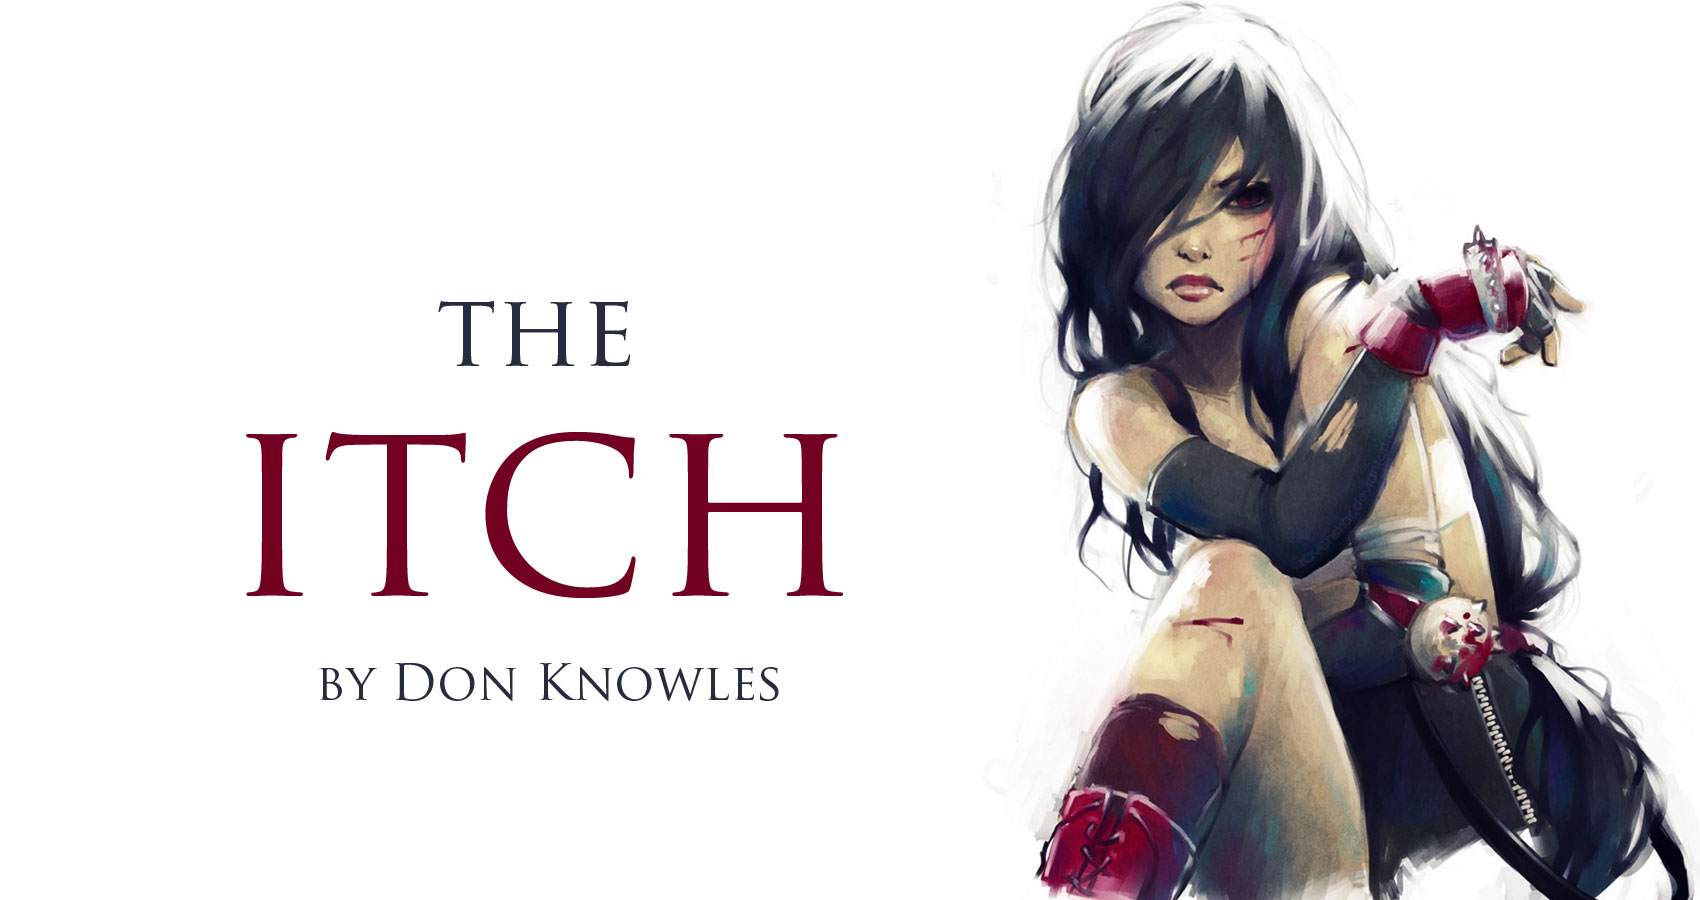 The Itch at Spillwords.com